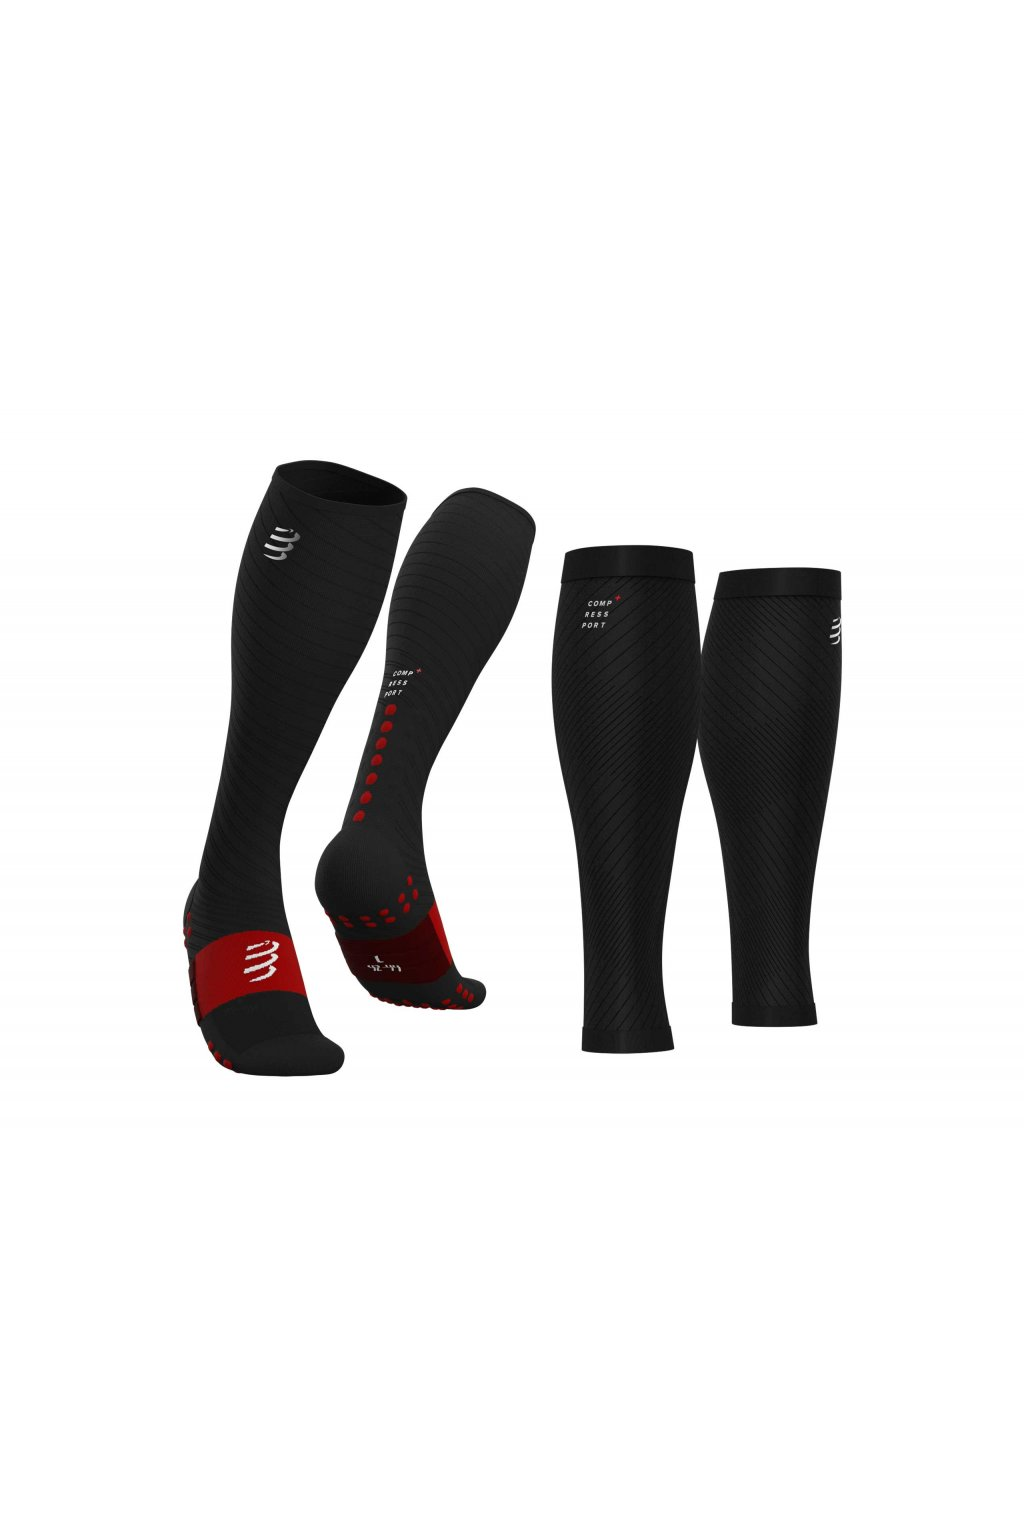 sock and compression sleeve